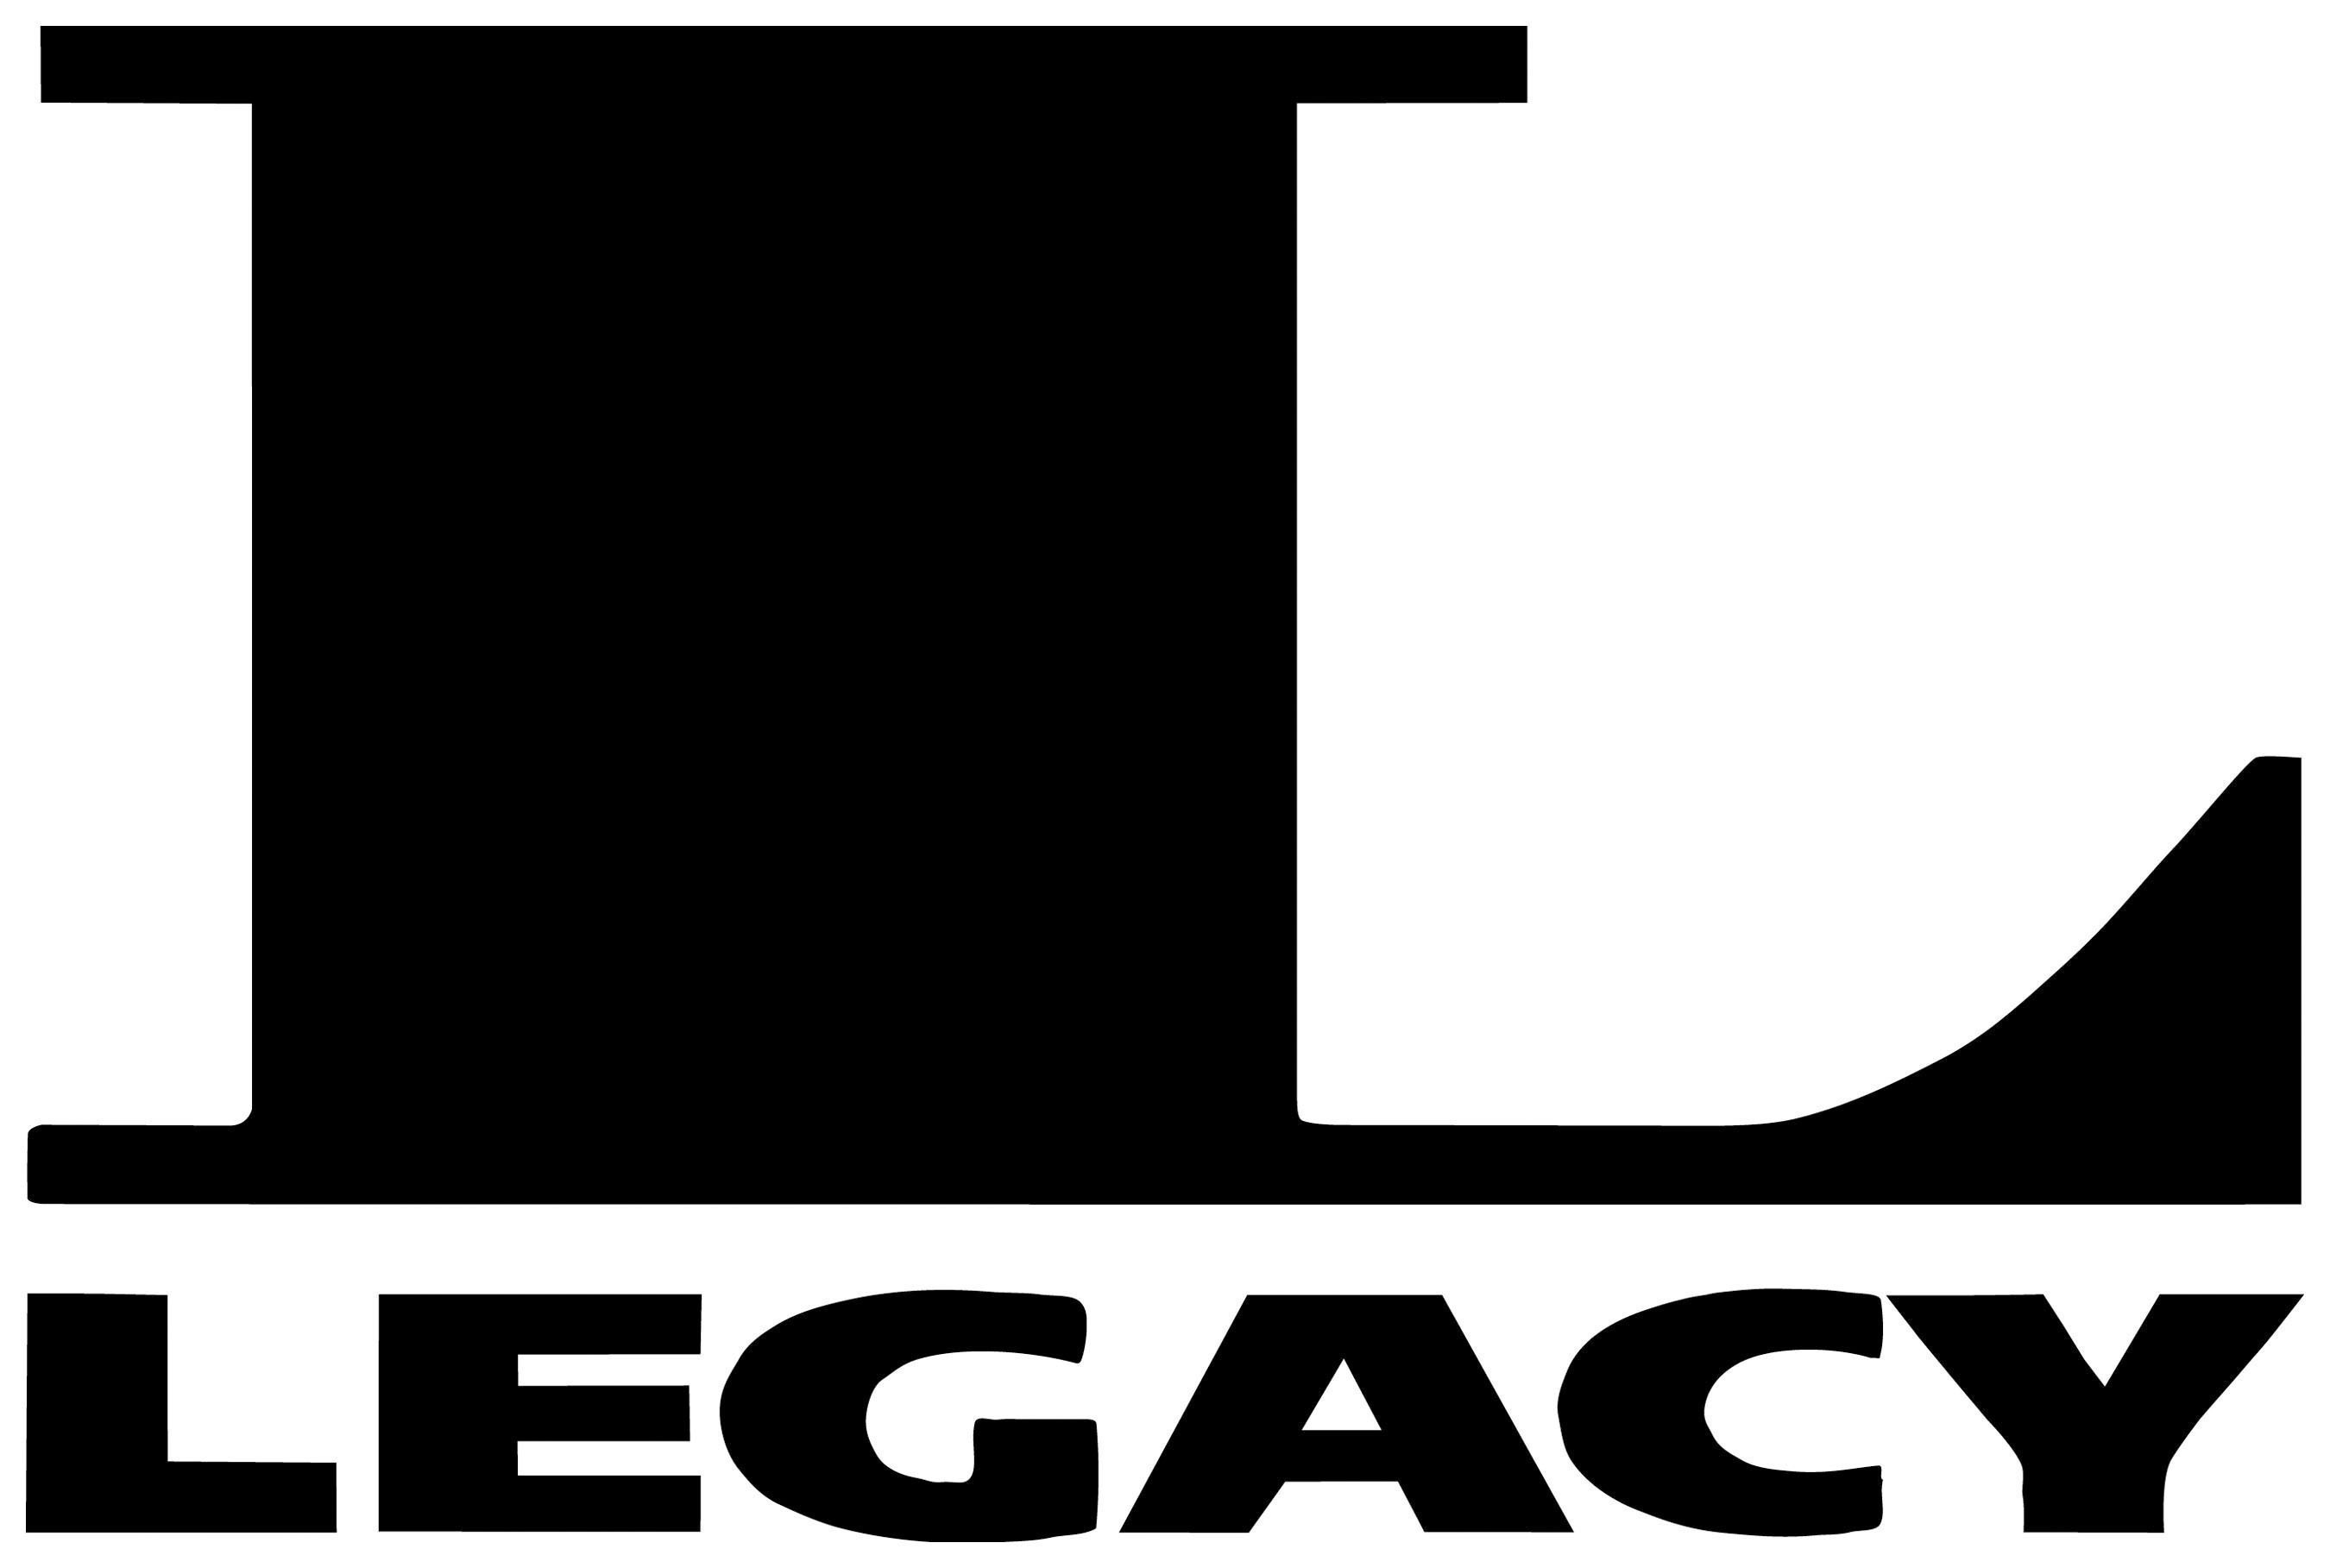 Legacy Recordings logo. Division of SONY Music Entertainment.